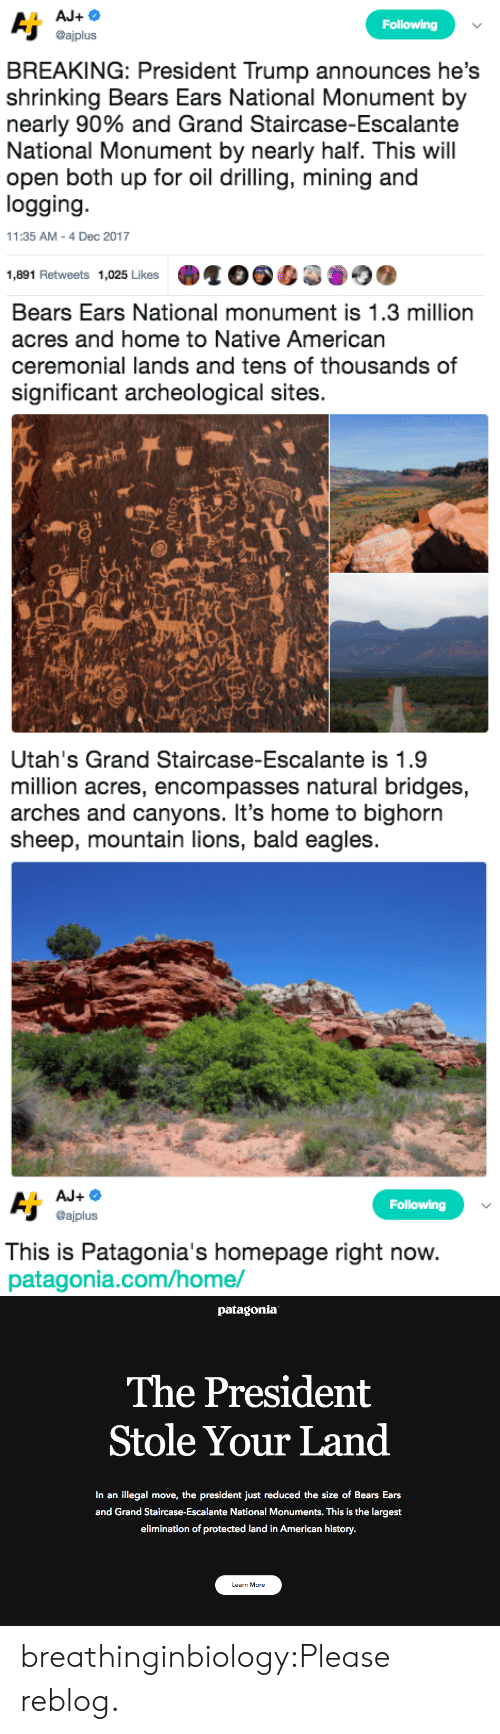 patagonia: Following  @ajplus  BREAKING: President Trump announces he's  shrinking Bears Ears National Monument by  nearly 90% and Grand Staircase-Escalante  National Monument by nearly half. This will  open both up for oil drilling, mining and  logging  11:35 AM-4 Dec 2017  1,891 Retweets 1,025 Likes   Bears Ears National monument is 1.3 million  acres and home to Native American  ceremonial lands and tens of thousands of  significant archeological sites.  sh   Utah's Grand Staircase-Escalante is 1.9  million acres, encompasses natural bridges,  arches and canyons. It's home to bighorn  sheep, mountain lions, bald eagles   Following  @ajplus  This is Patagonia's homepage right now  patagonia.com/home/   patagonia  The President  Stole Your Land  In an illegal move, the president just reduced the size of Bears Ears  and Grand Staircase-Escalante National Monuments. This is the largest  elimination of protected land in American history.  Learn More breathinginbiology:Please reblog.